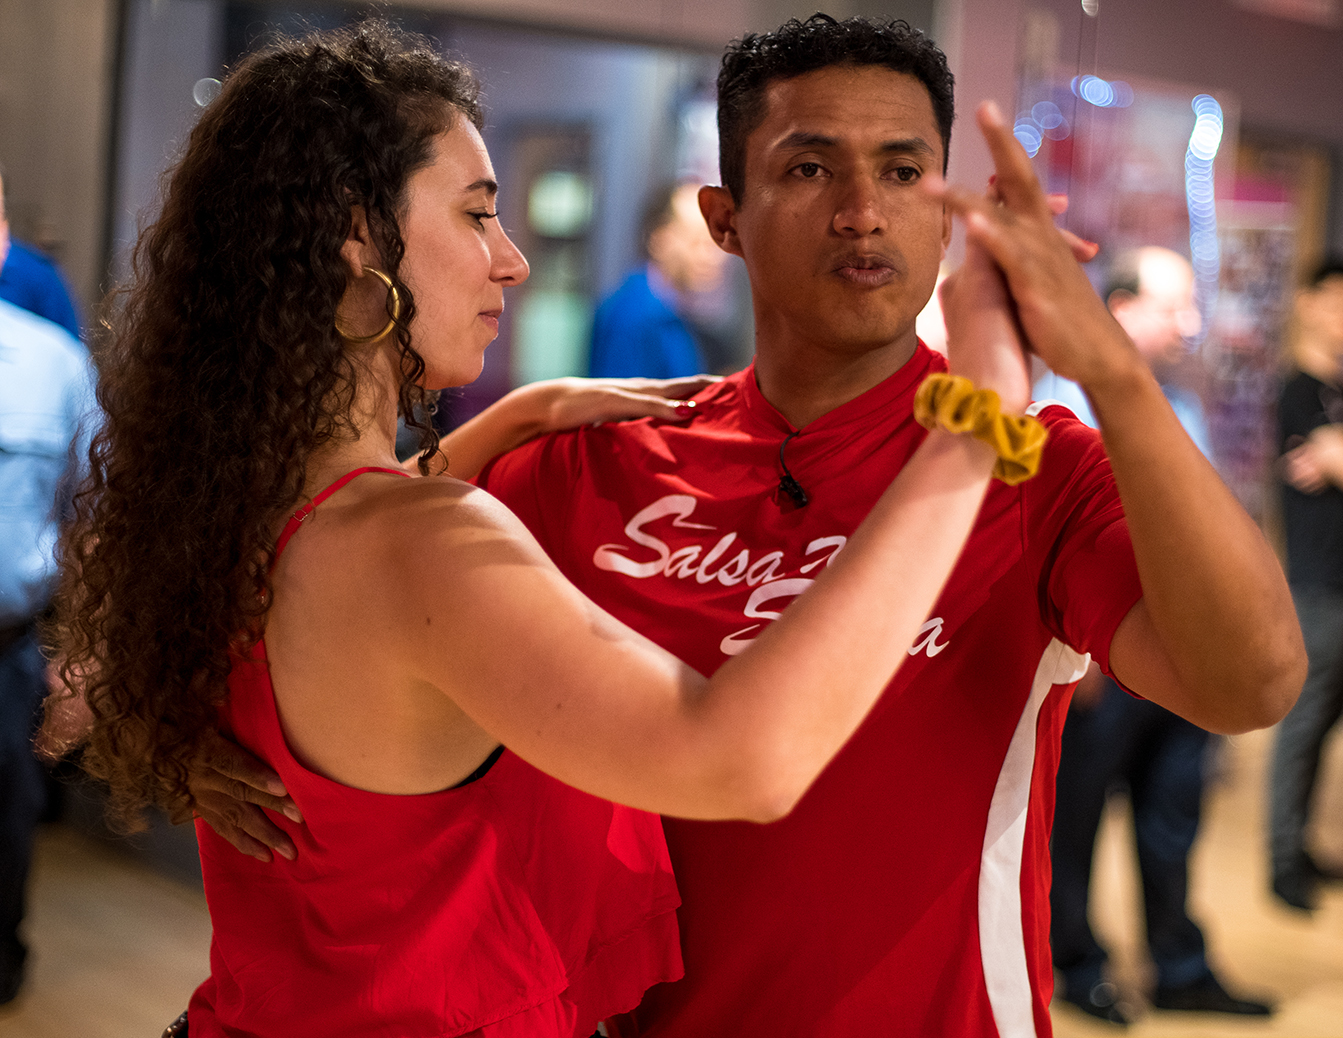 Intermediate - Advanced Salsa On 1 7-Week Specialty Course With Instructor Joffre Arce at the Salsa With Silvia dance studio in DC